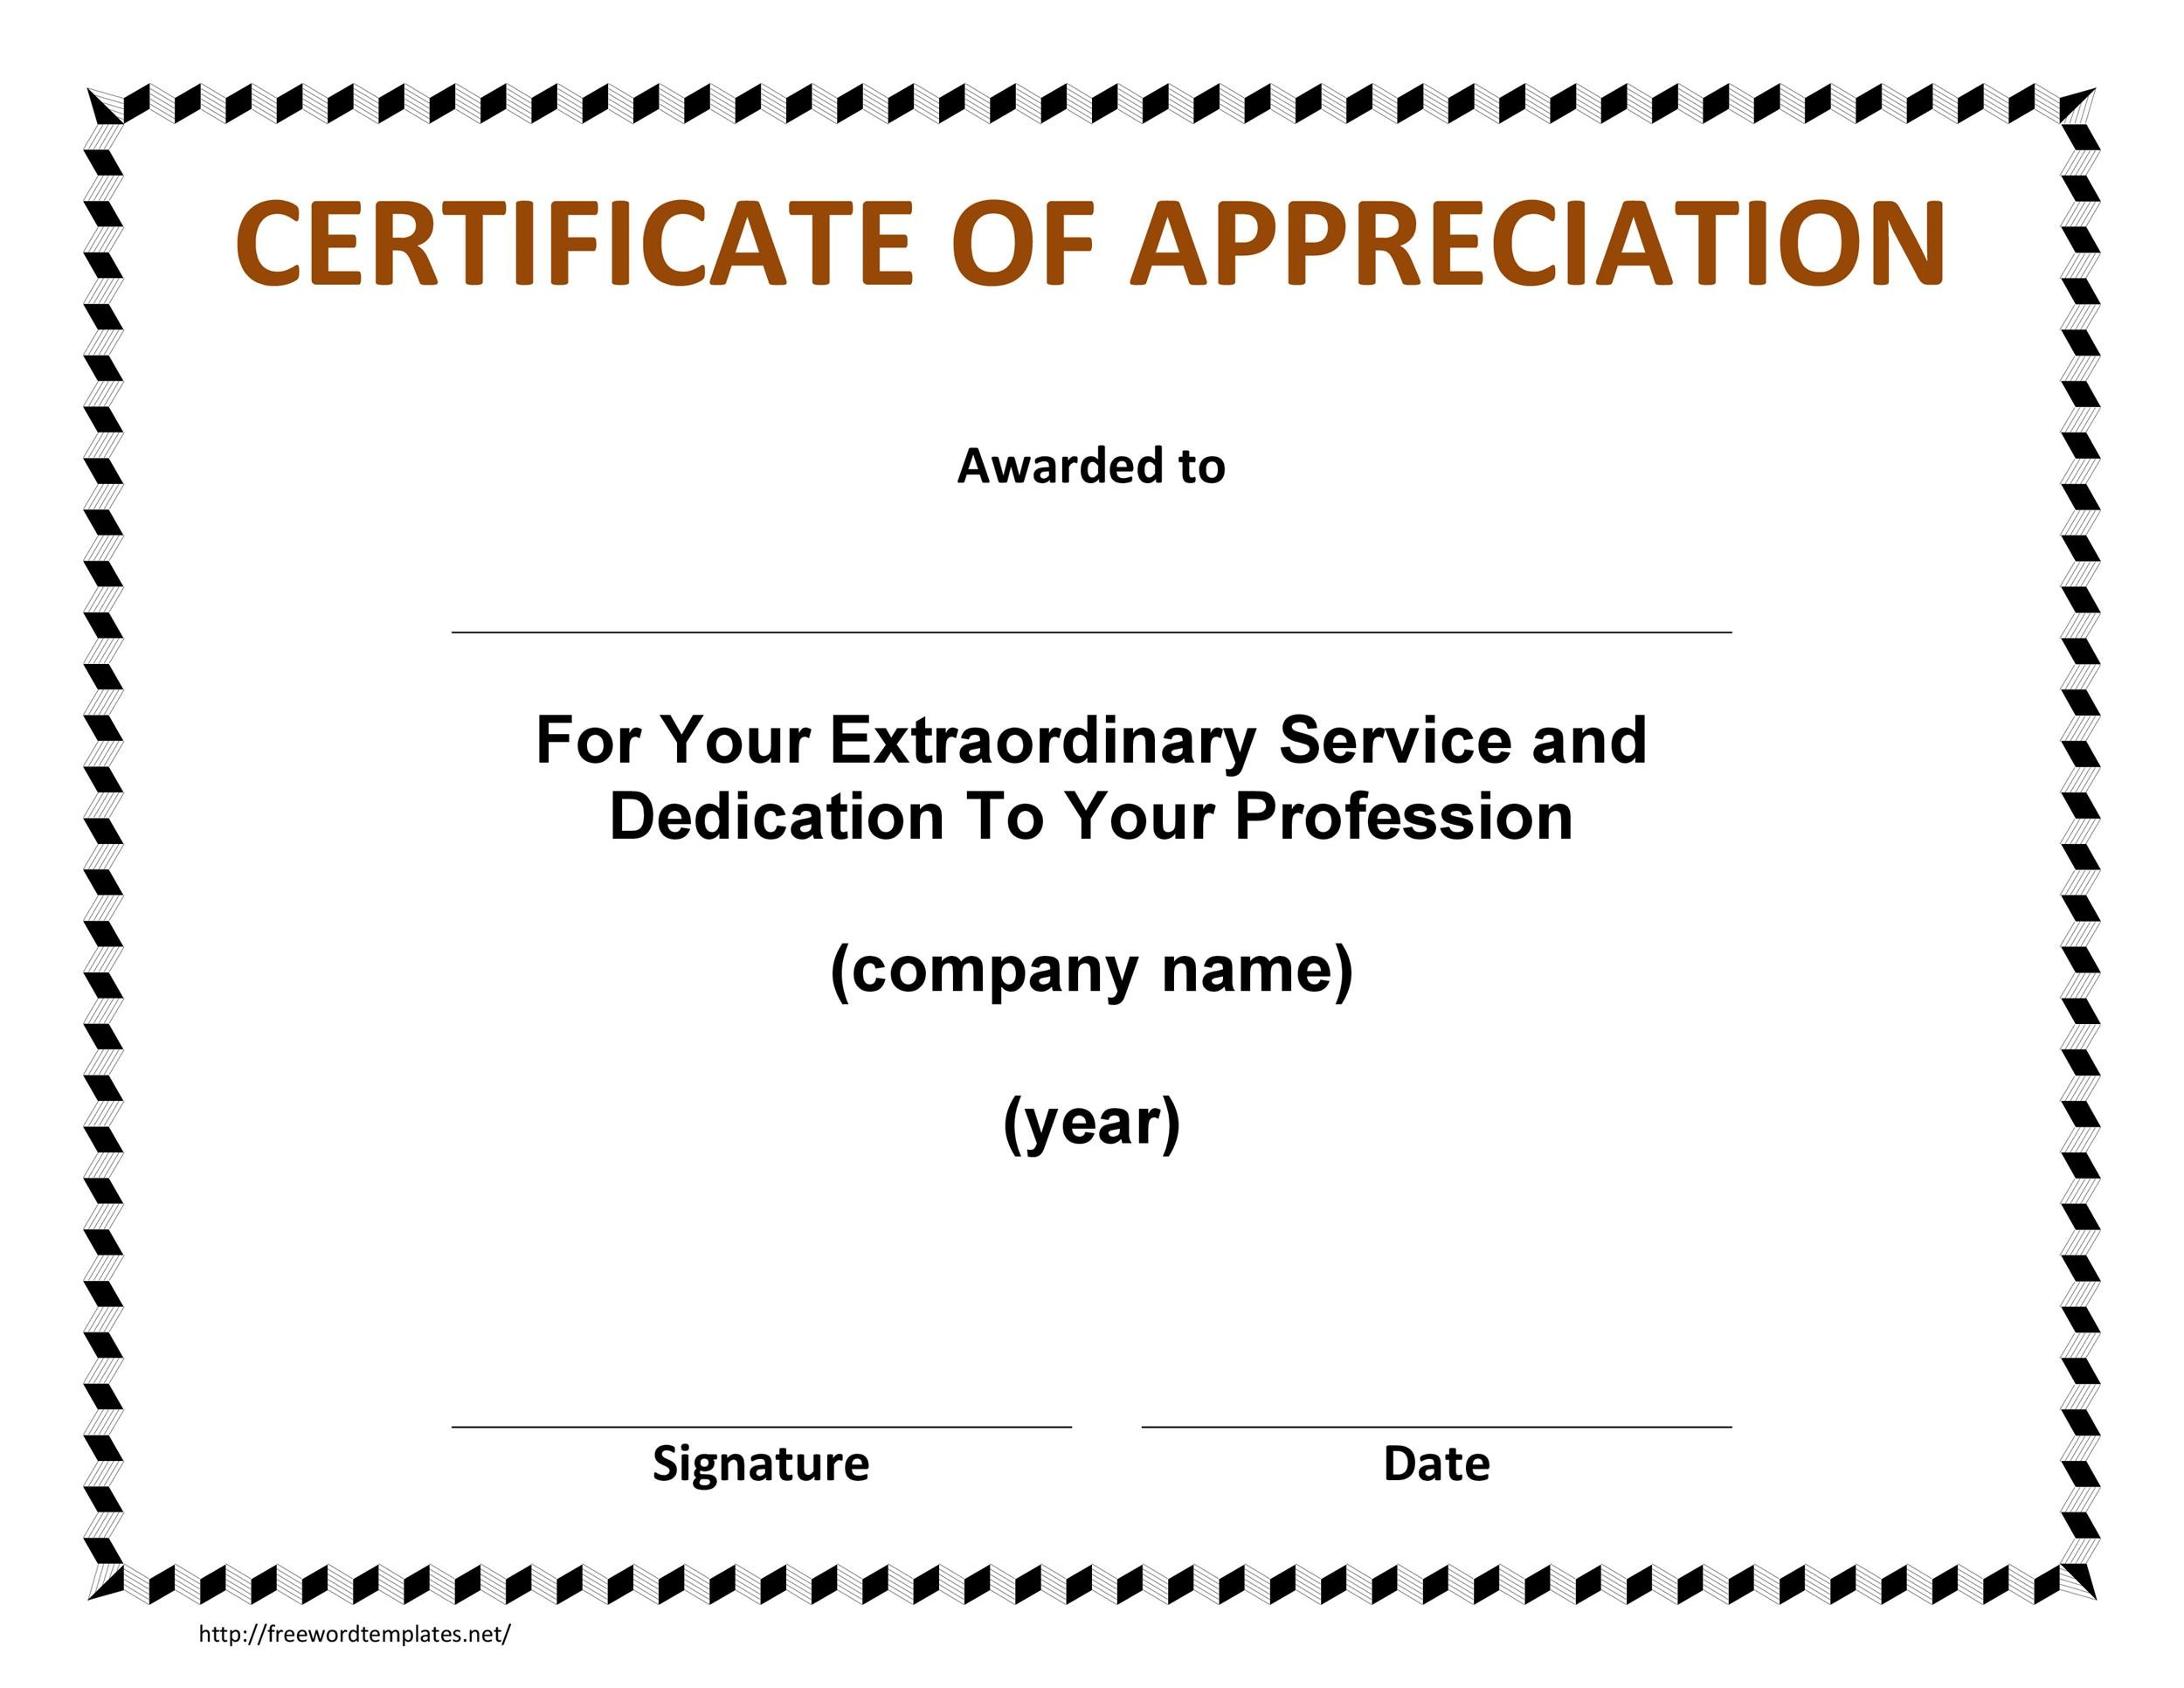 30 free certificate of appreciation templates and letters printable certificate of appreciation 04 yelopaper Images